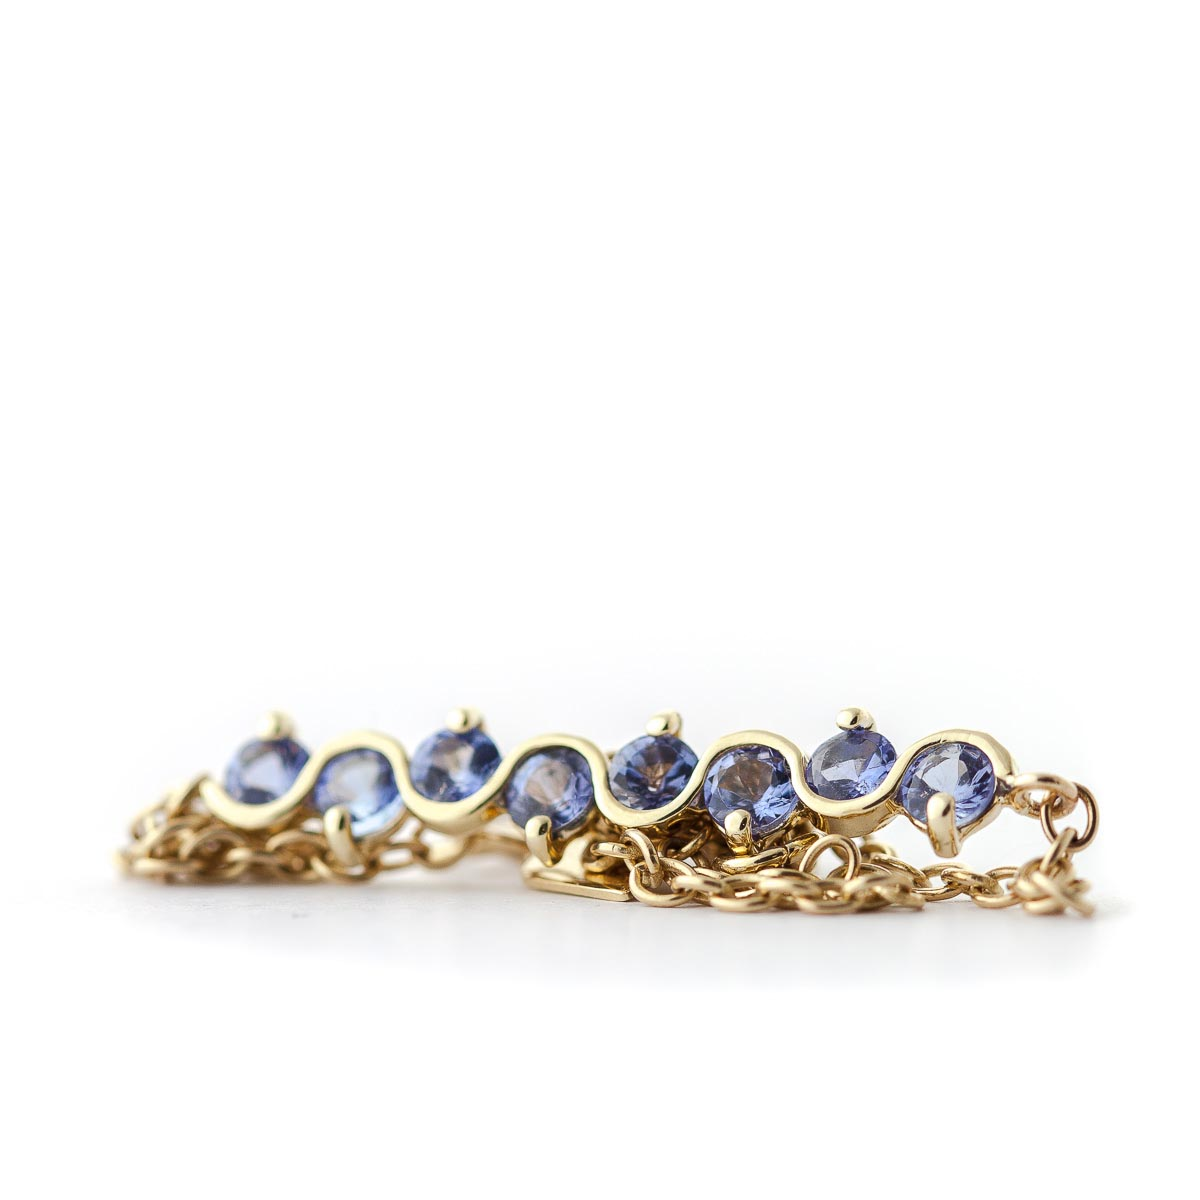 Round Brilliant Cut Tanzanite Adjustable Bracelet 1.55ctw in 9ct Gold